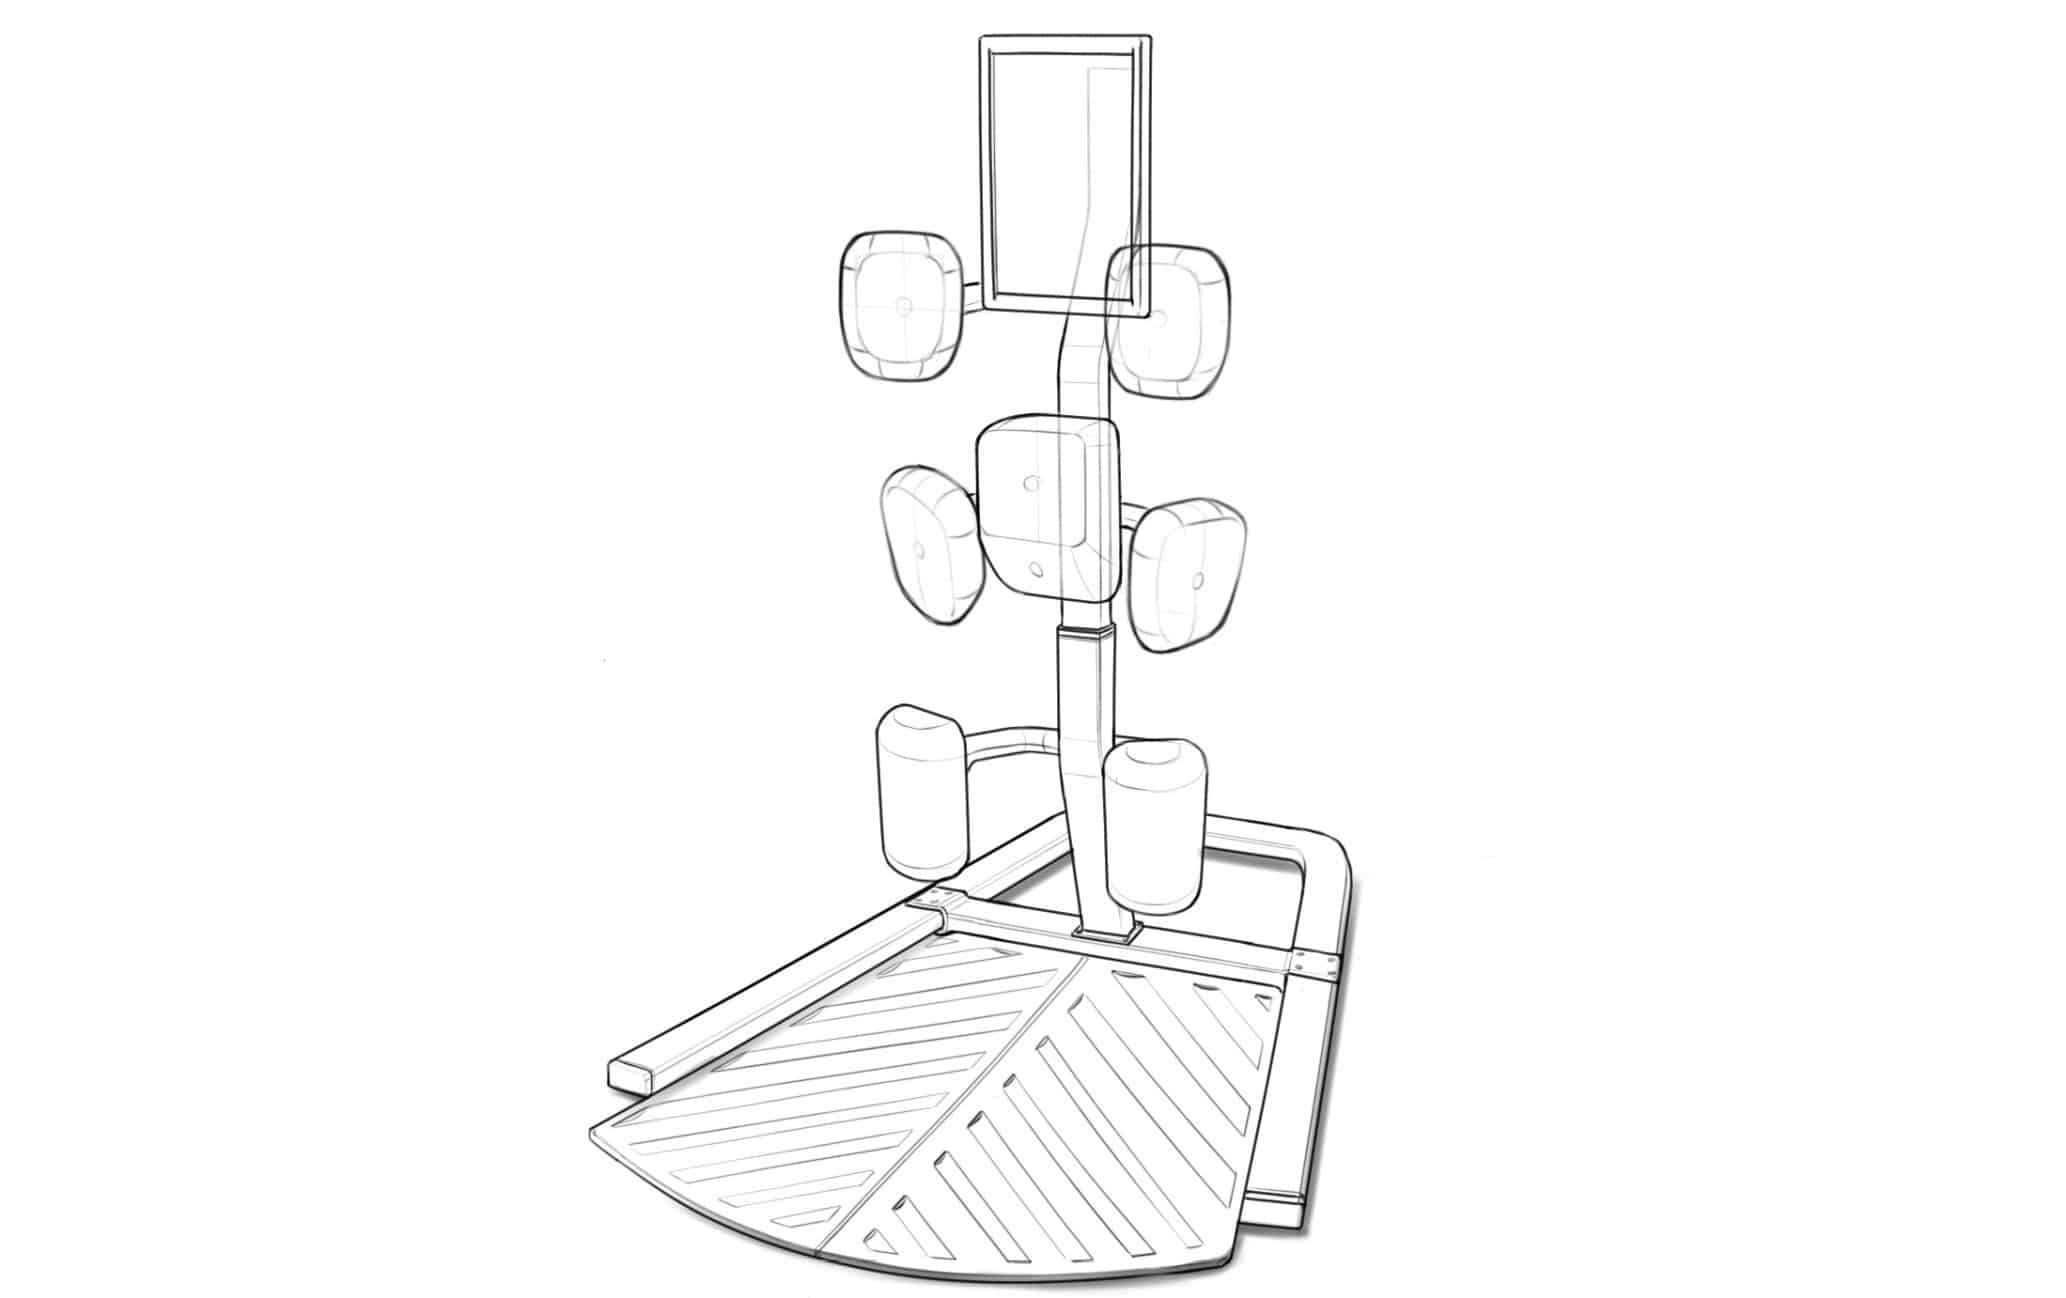 Industrial design sketches of the Nexersys N3 Elite